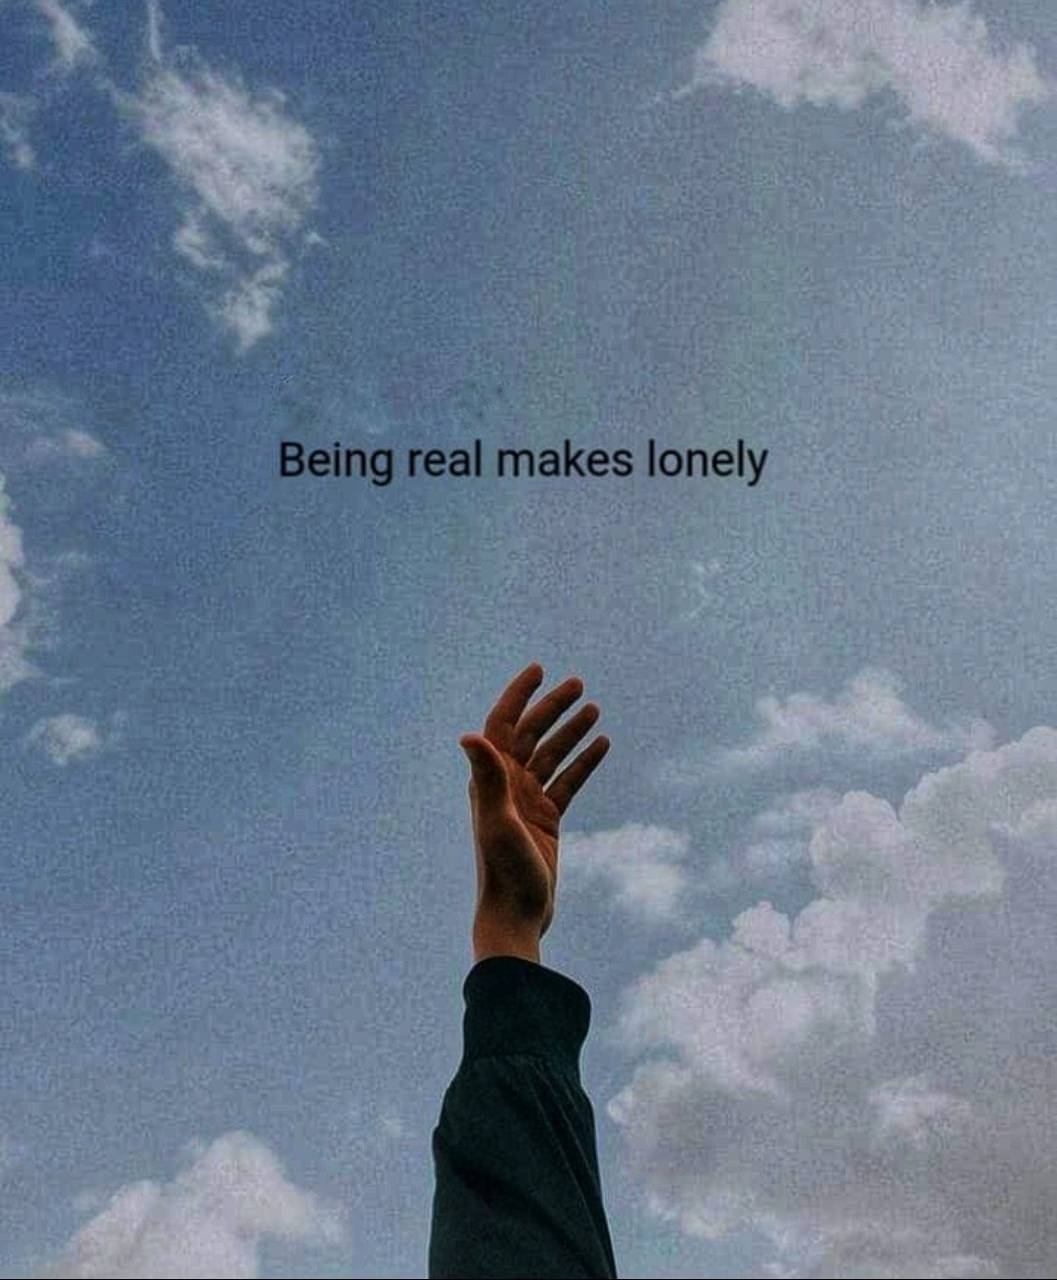 Alone but real